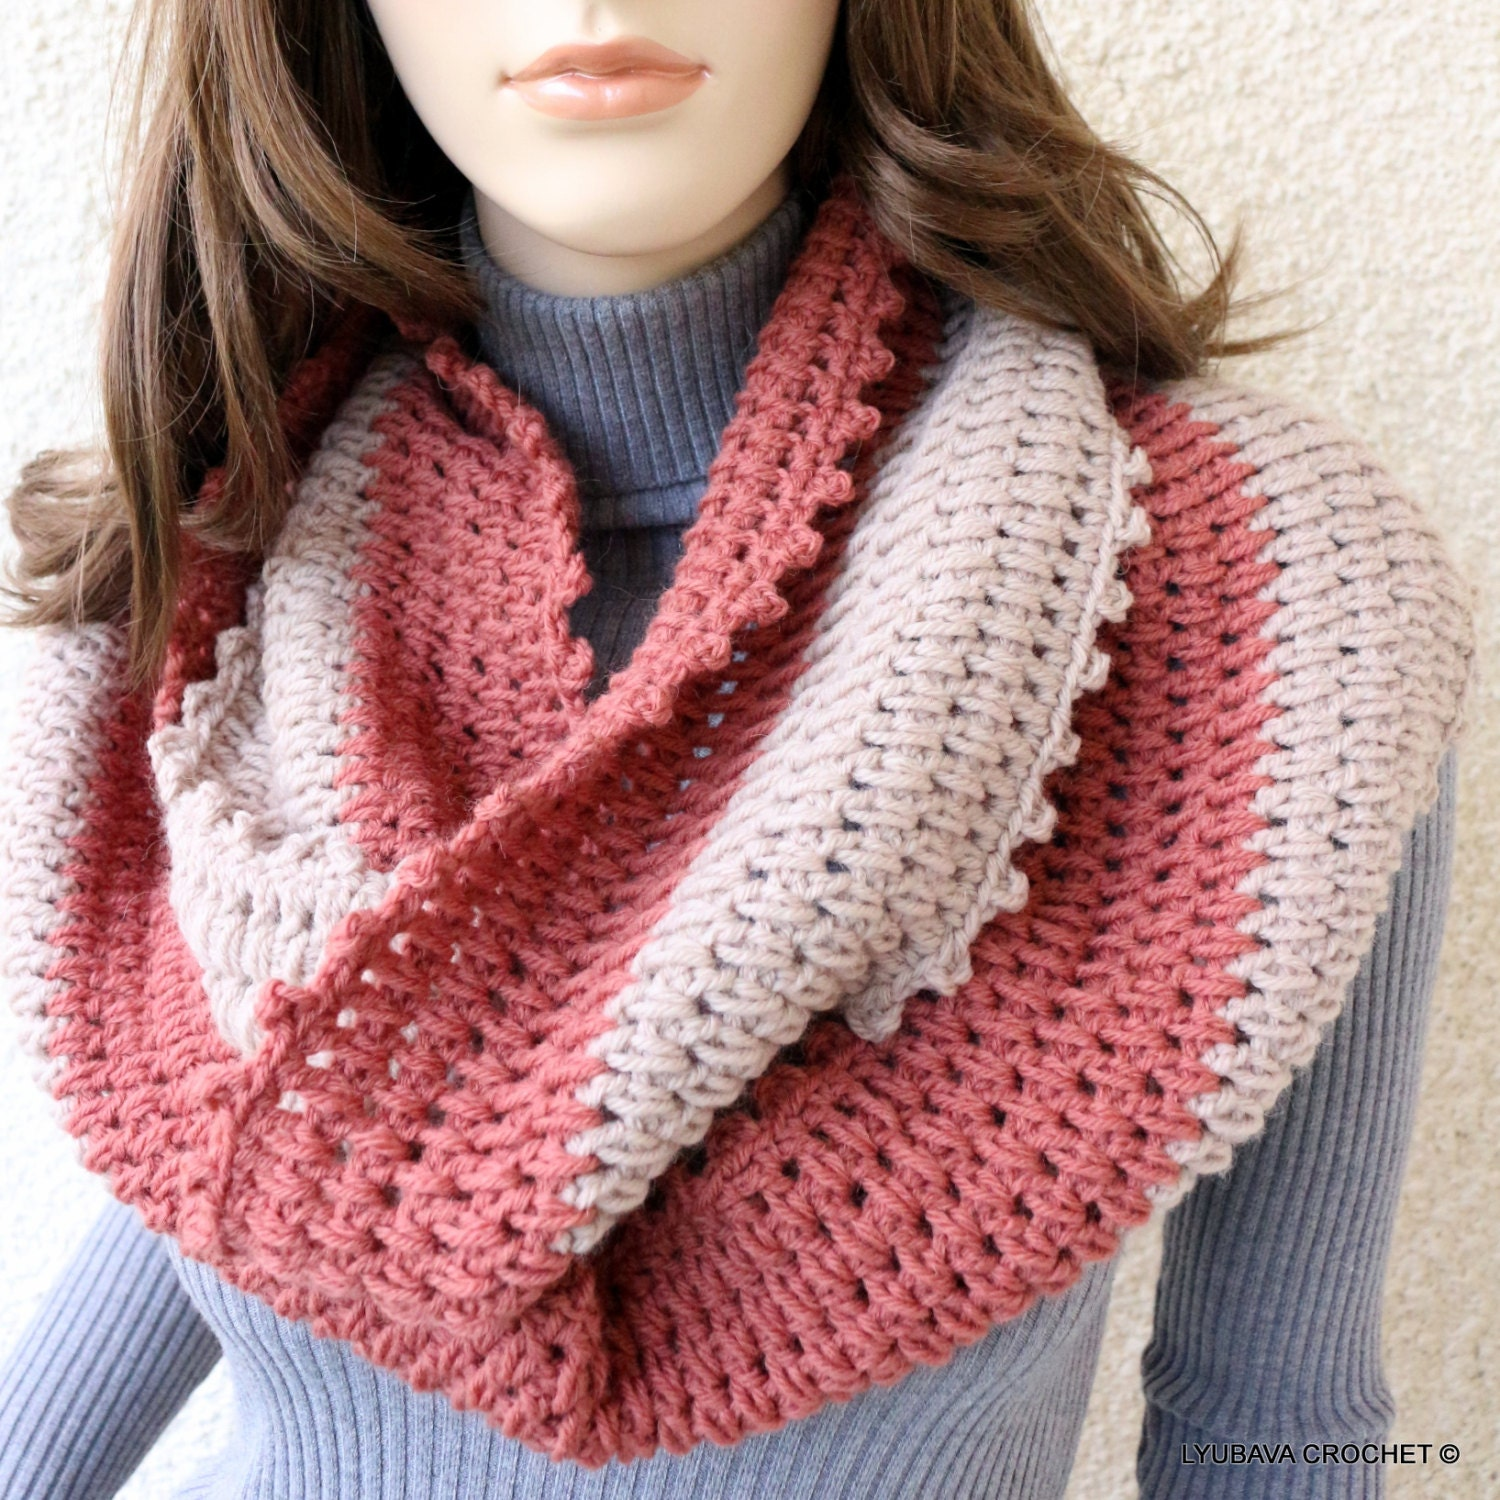 Crochet Multiple Colors : Crochet Scarf Infinity Scarf Two Colors by CrochetedByLyubava